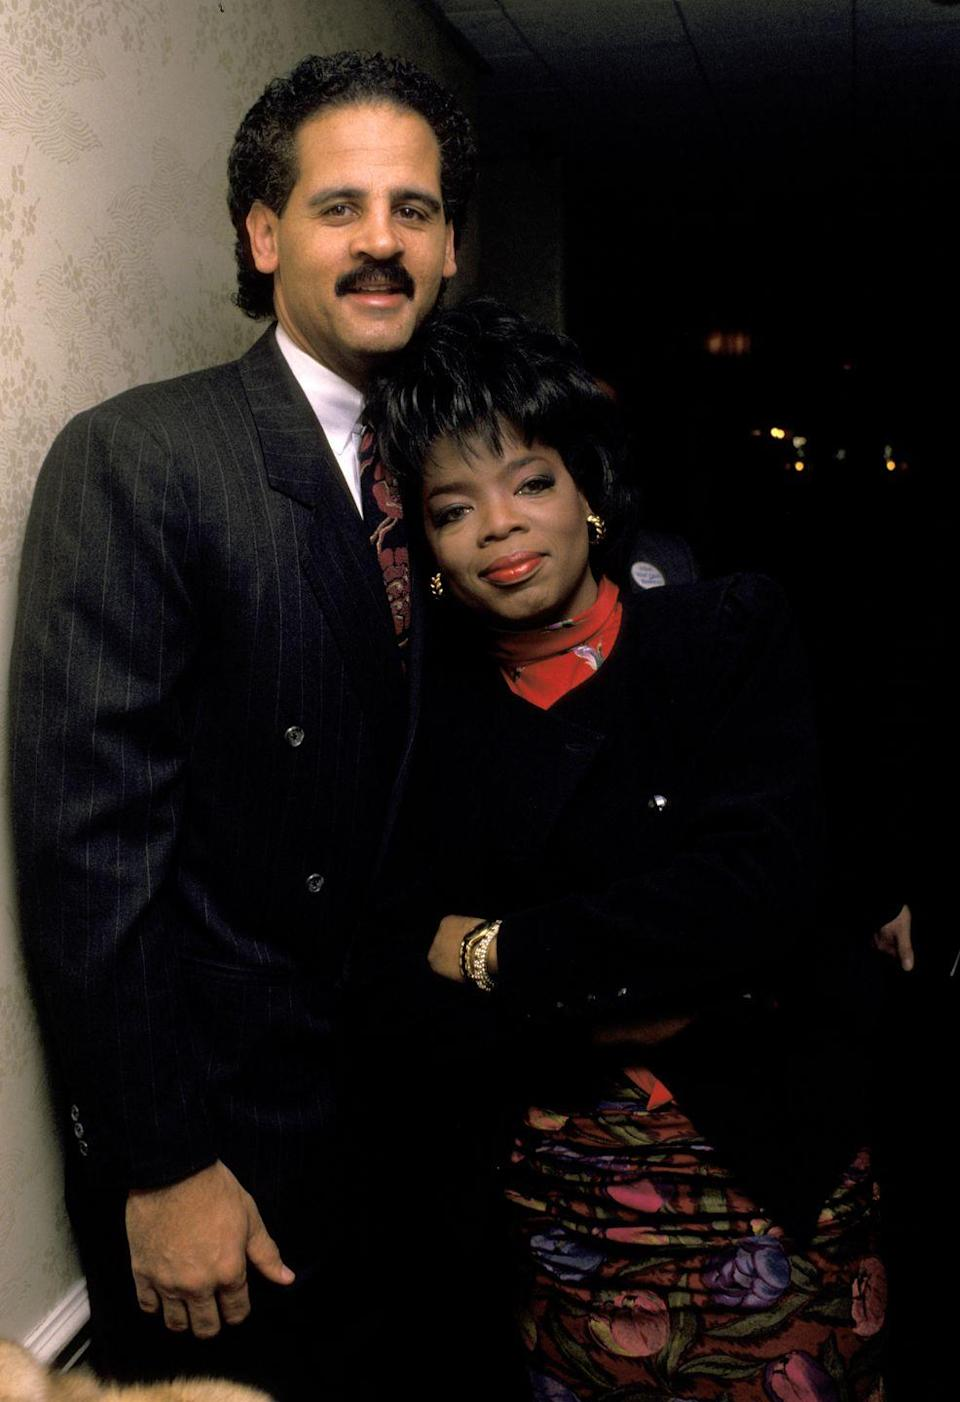 <p>Winfrey began dating Graham in 1986, the same year her namesake show launched, after meeting him at a charity event. The pair got engaged in 1992, but decided against marriage.</p>